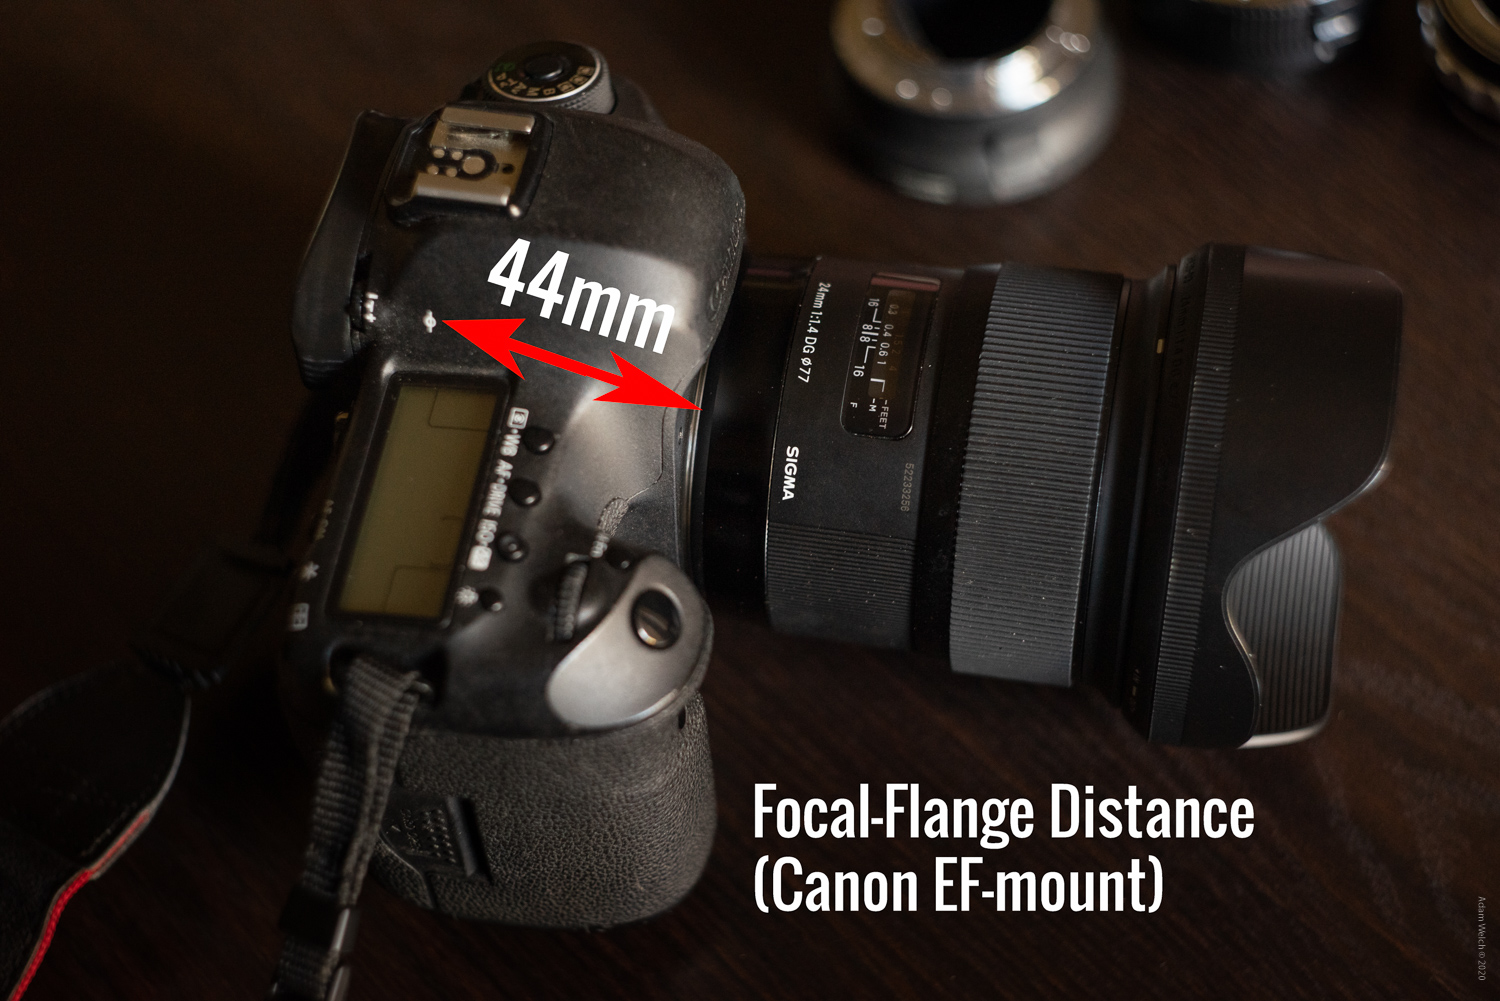 Flange-focal distance of the Canon 5D MK3